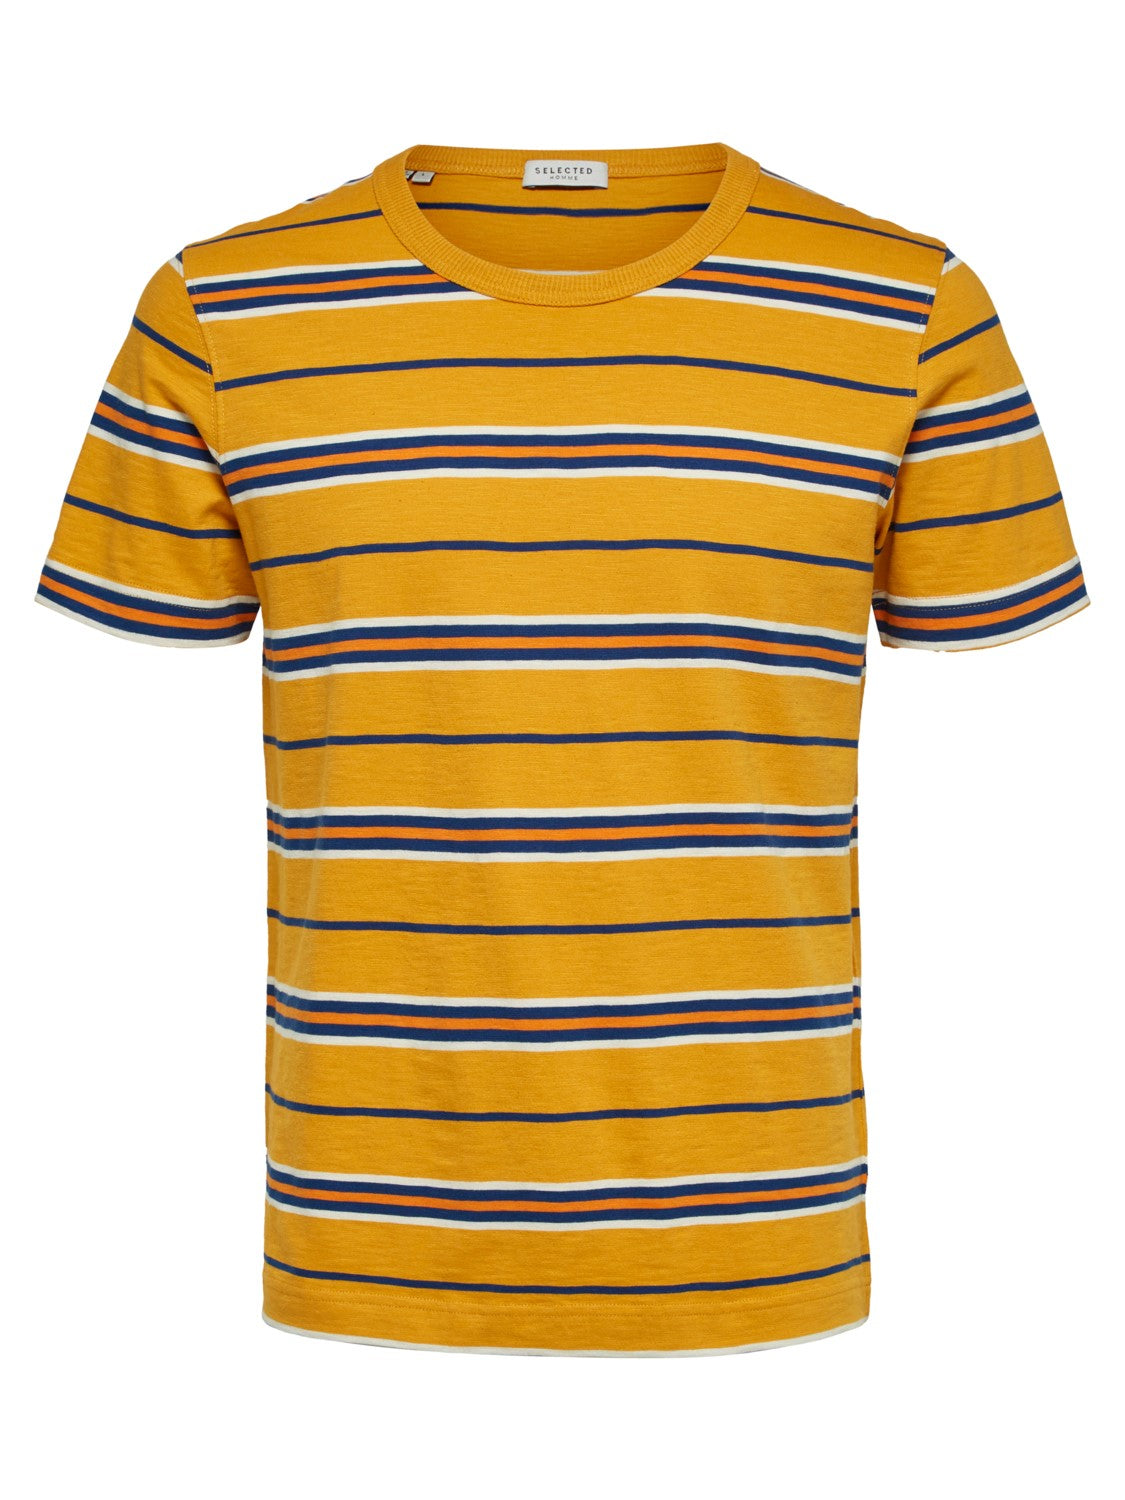 Selectedhomme jake stripe sunflower